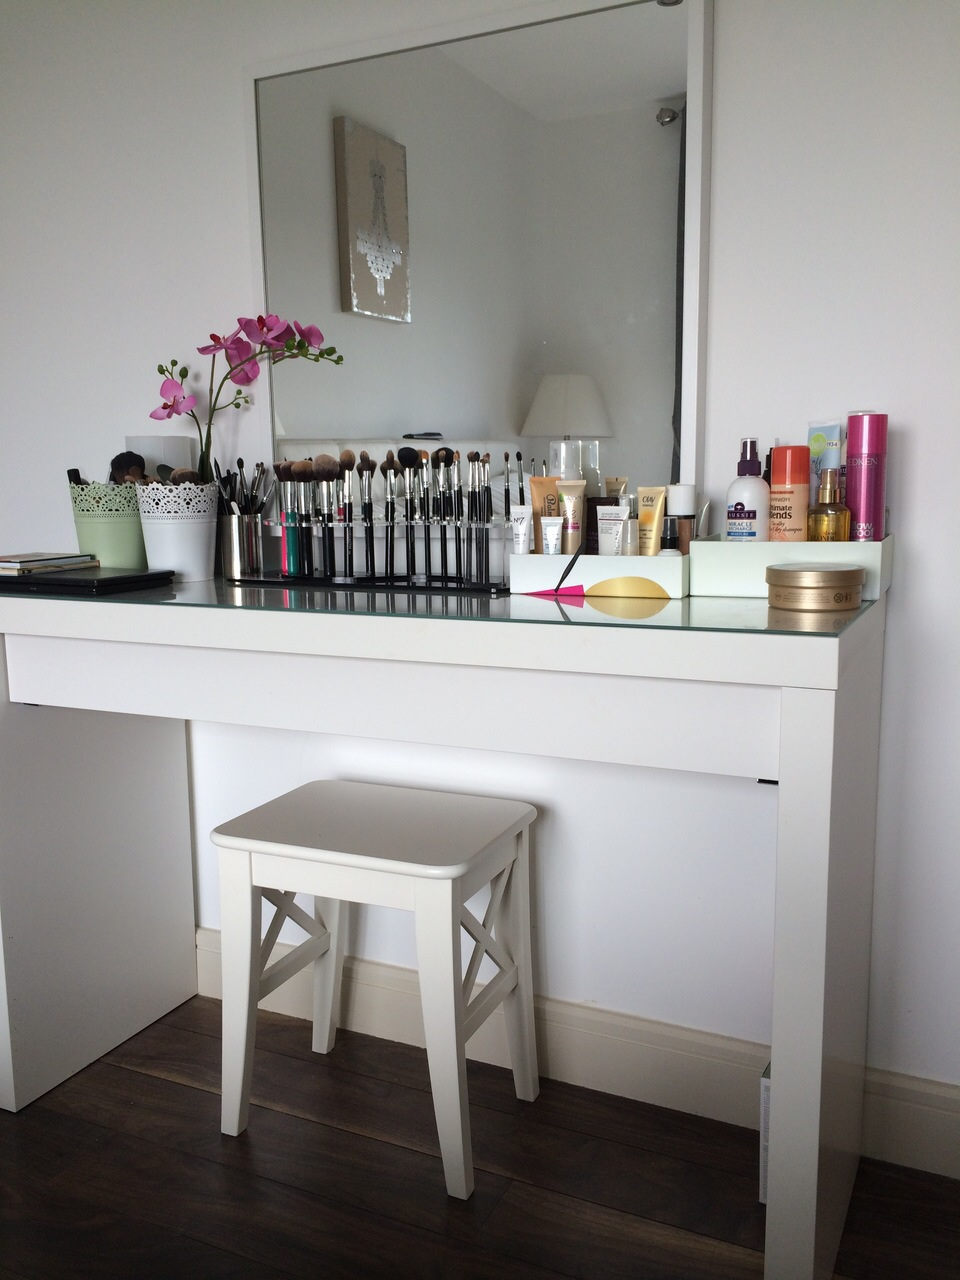 My Make Up Table And Storage Pippa OConnor Official